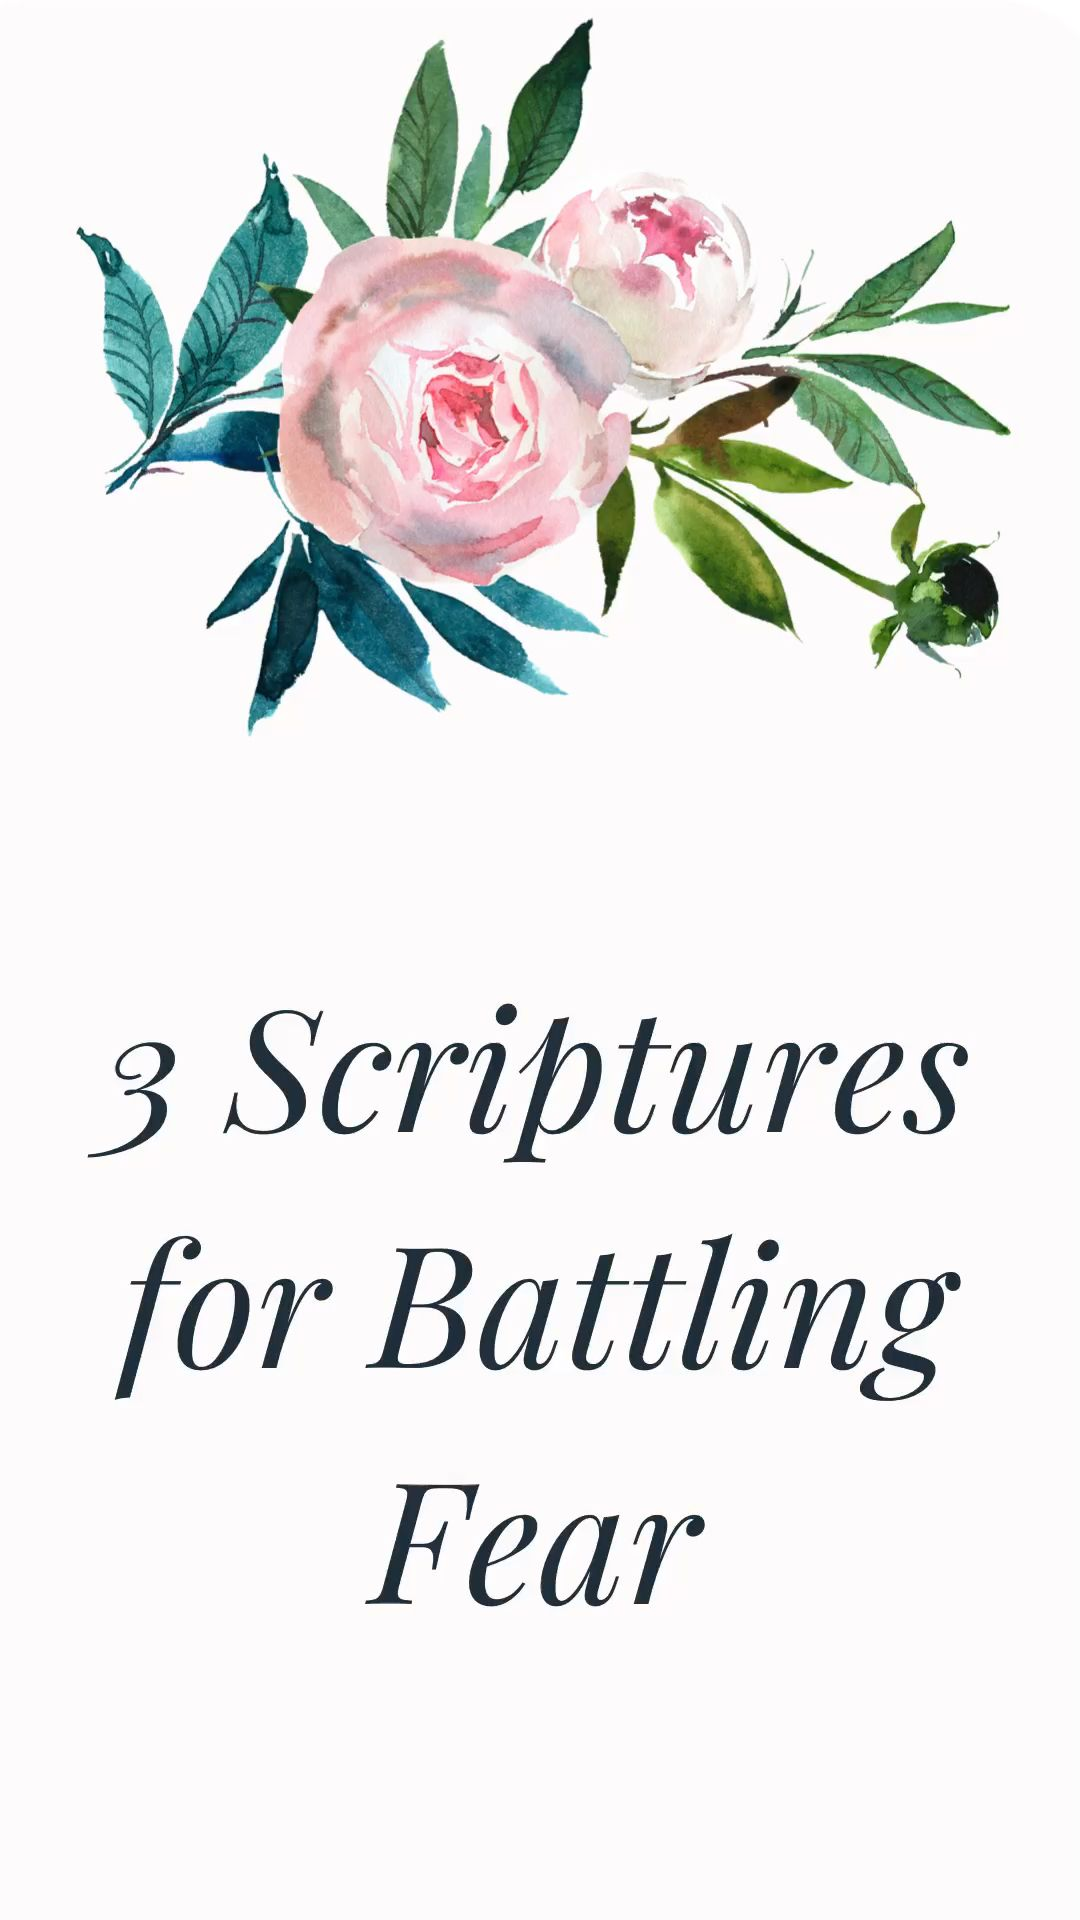 3 Scriptures for Battling Fear